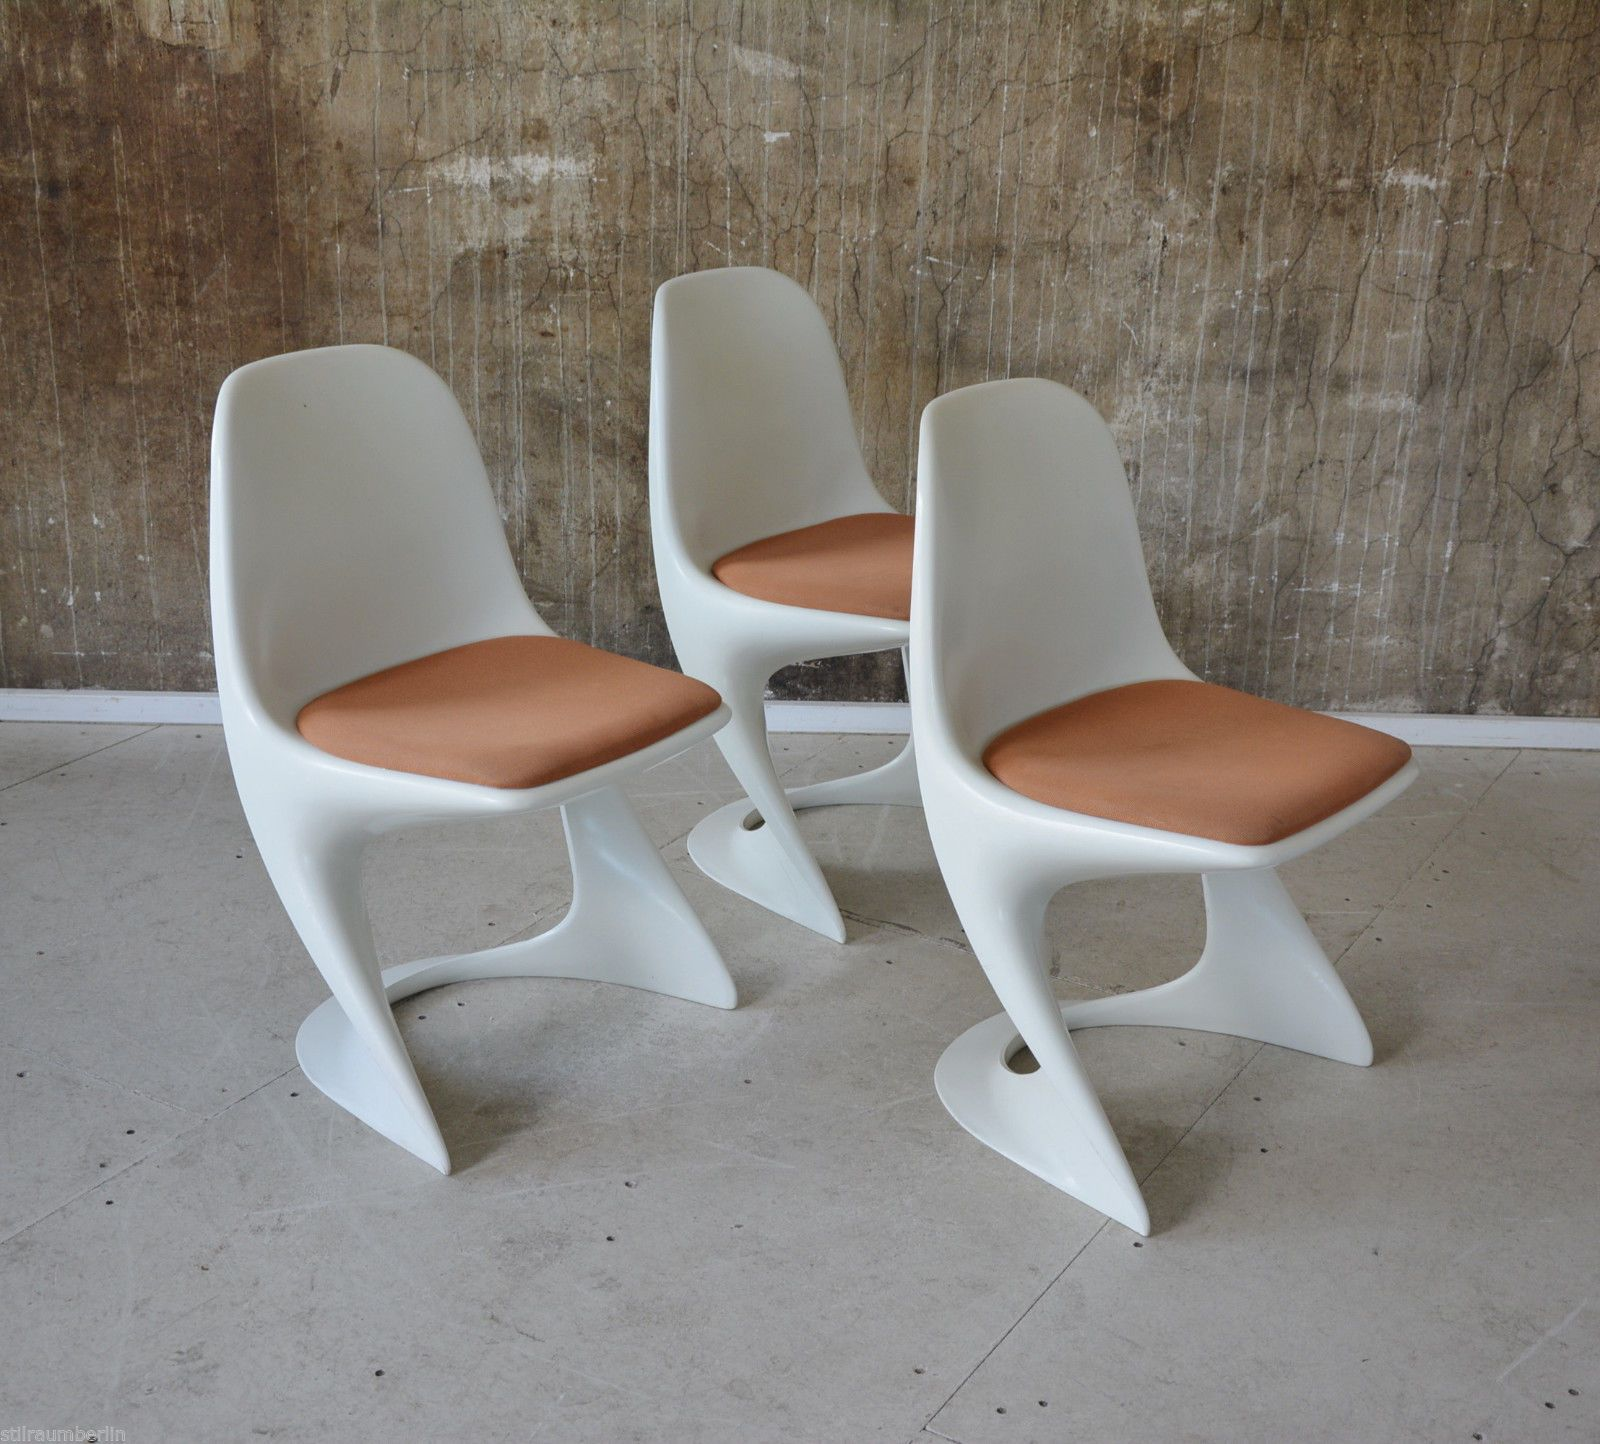 70s chairs is frank o gehry s cardboard chair wiggle side chair - 1 3 Casala Stuhl Alexander Begge Chair Space Age Eames Panton Ra I 70er 70s